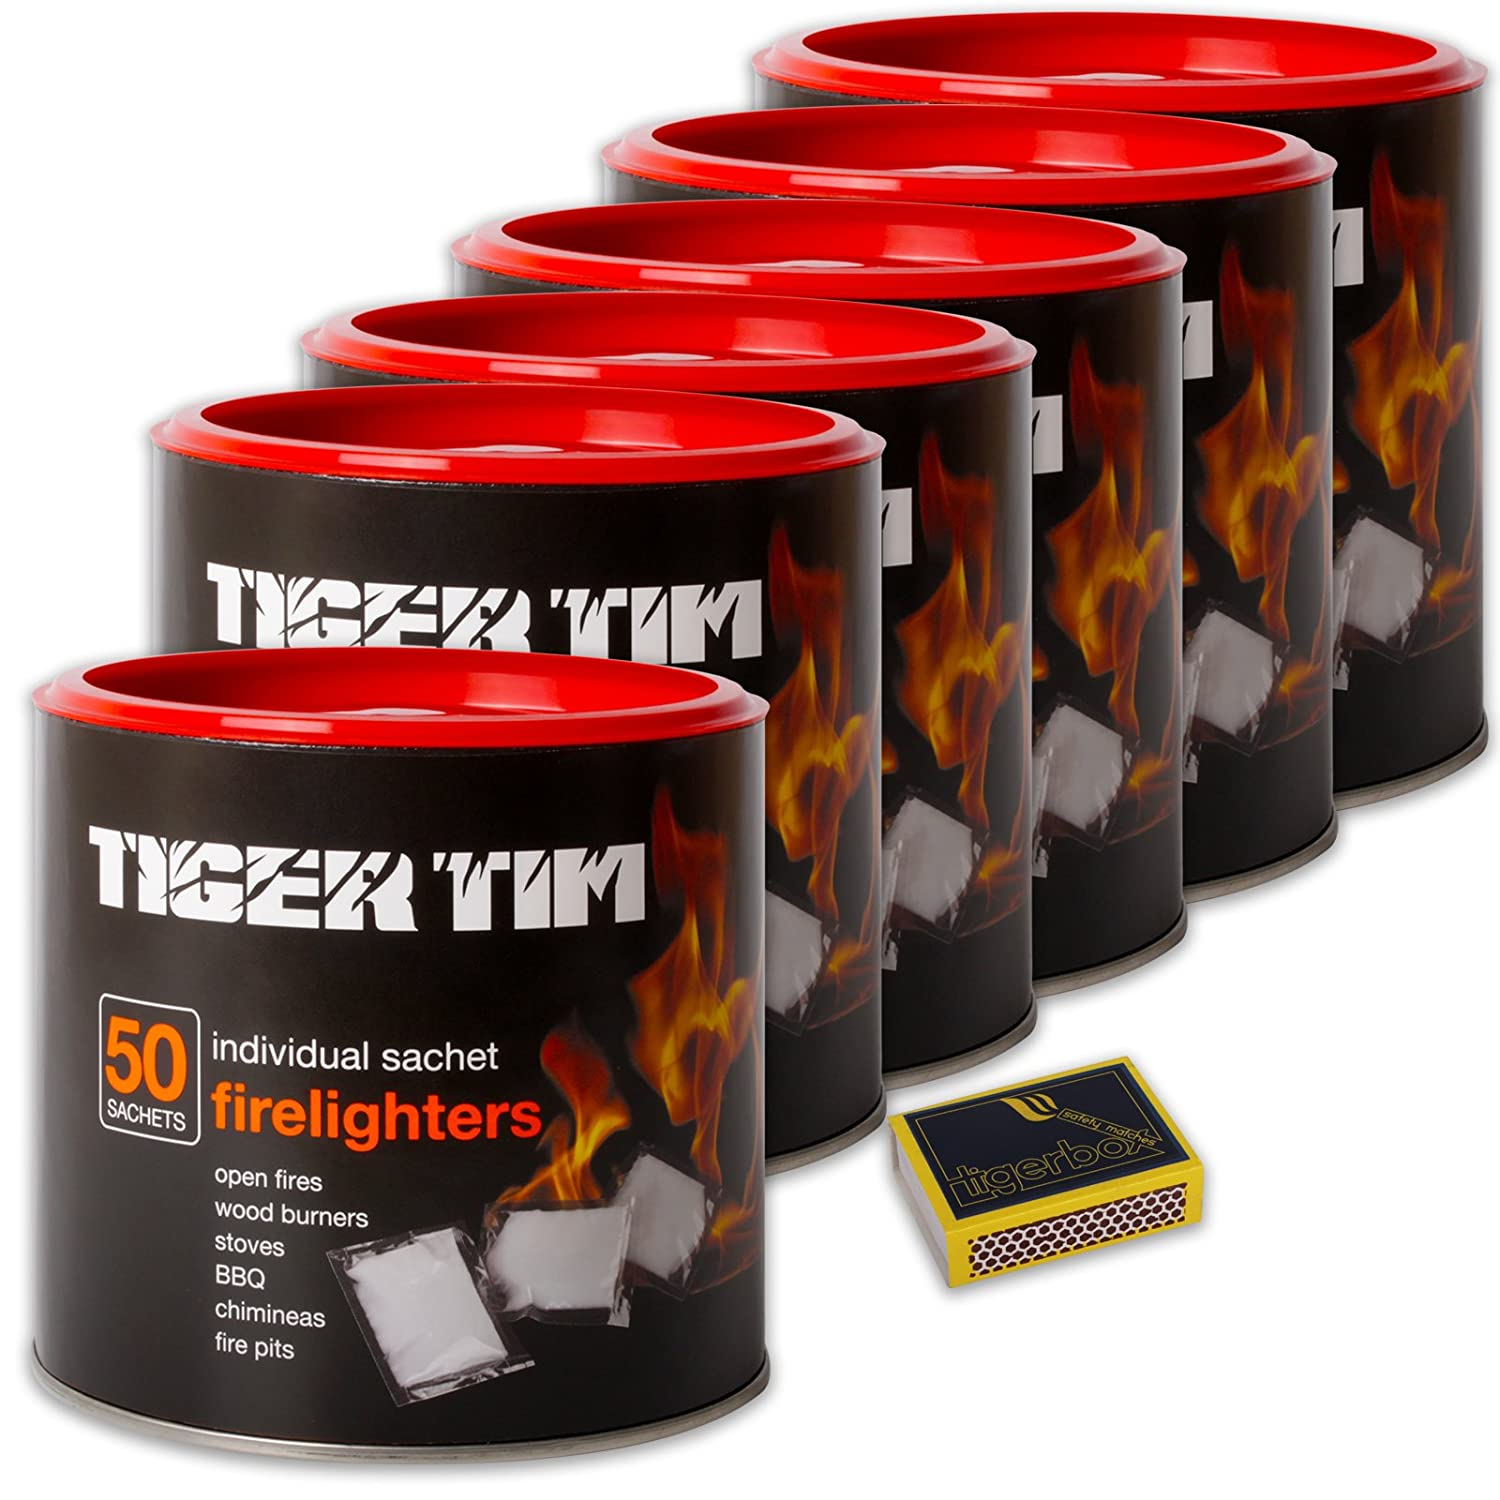 1 X Barrel of 50 Super Clean Long Lasting No Smell Sachet Tiger Tim Firelighters & Tigerbox Safety Matches Tiger Tim / Tigerbox